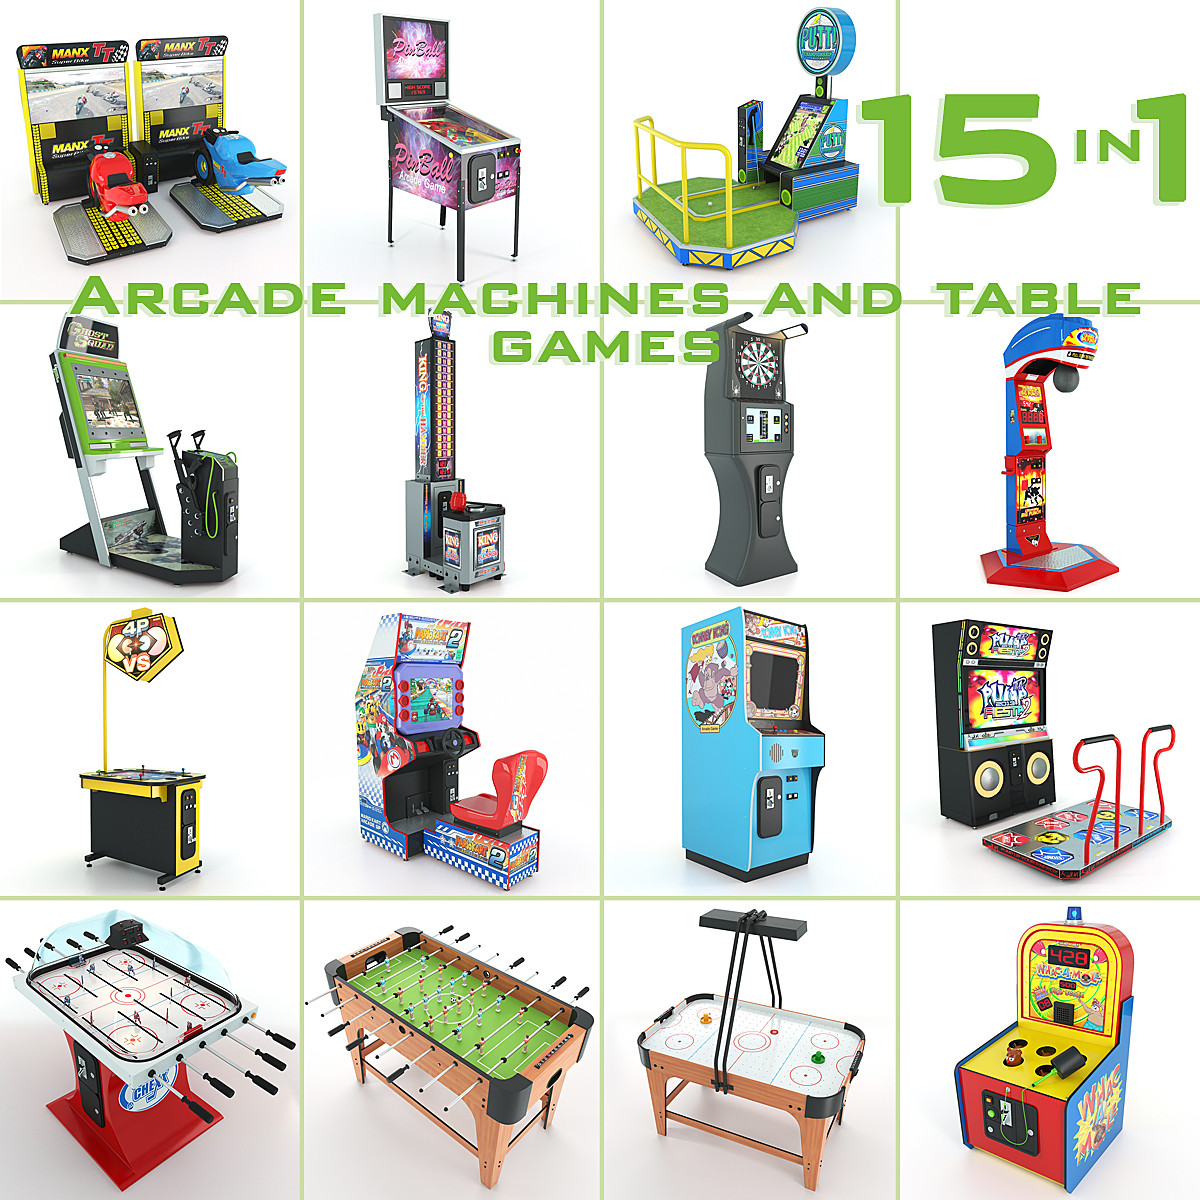 16in1 Arcade machines and table games.jpg